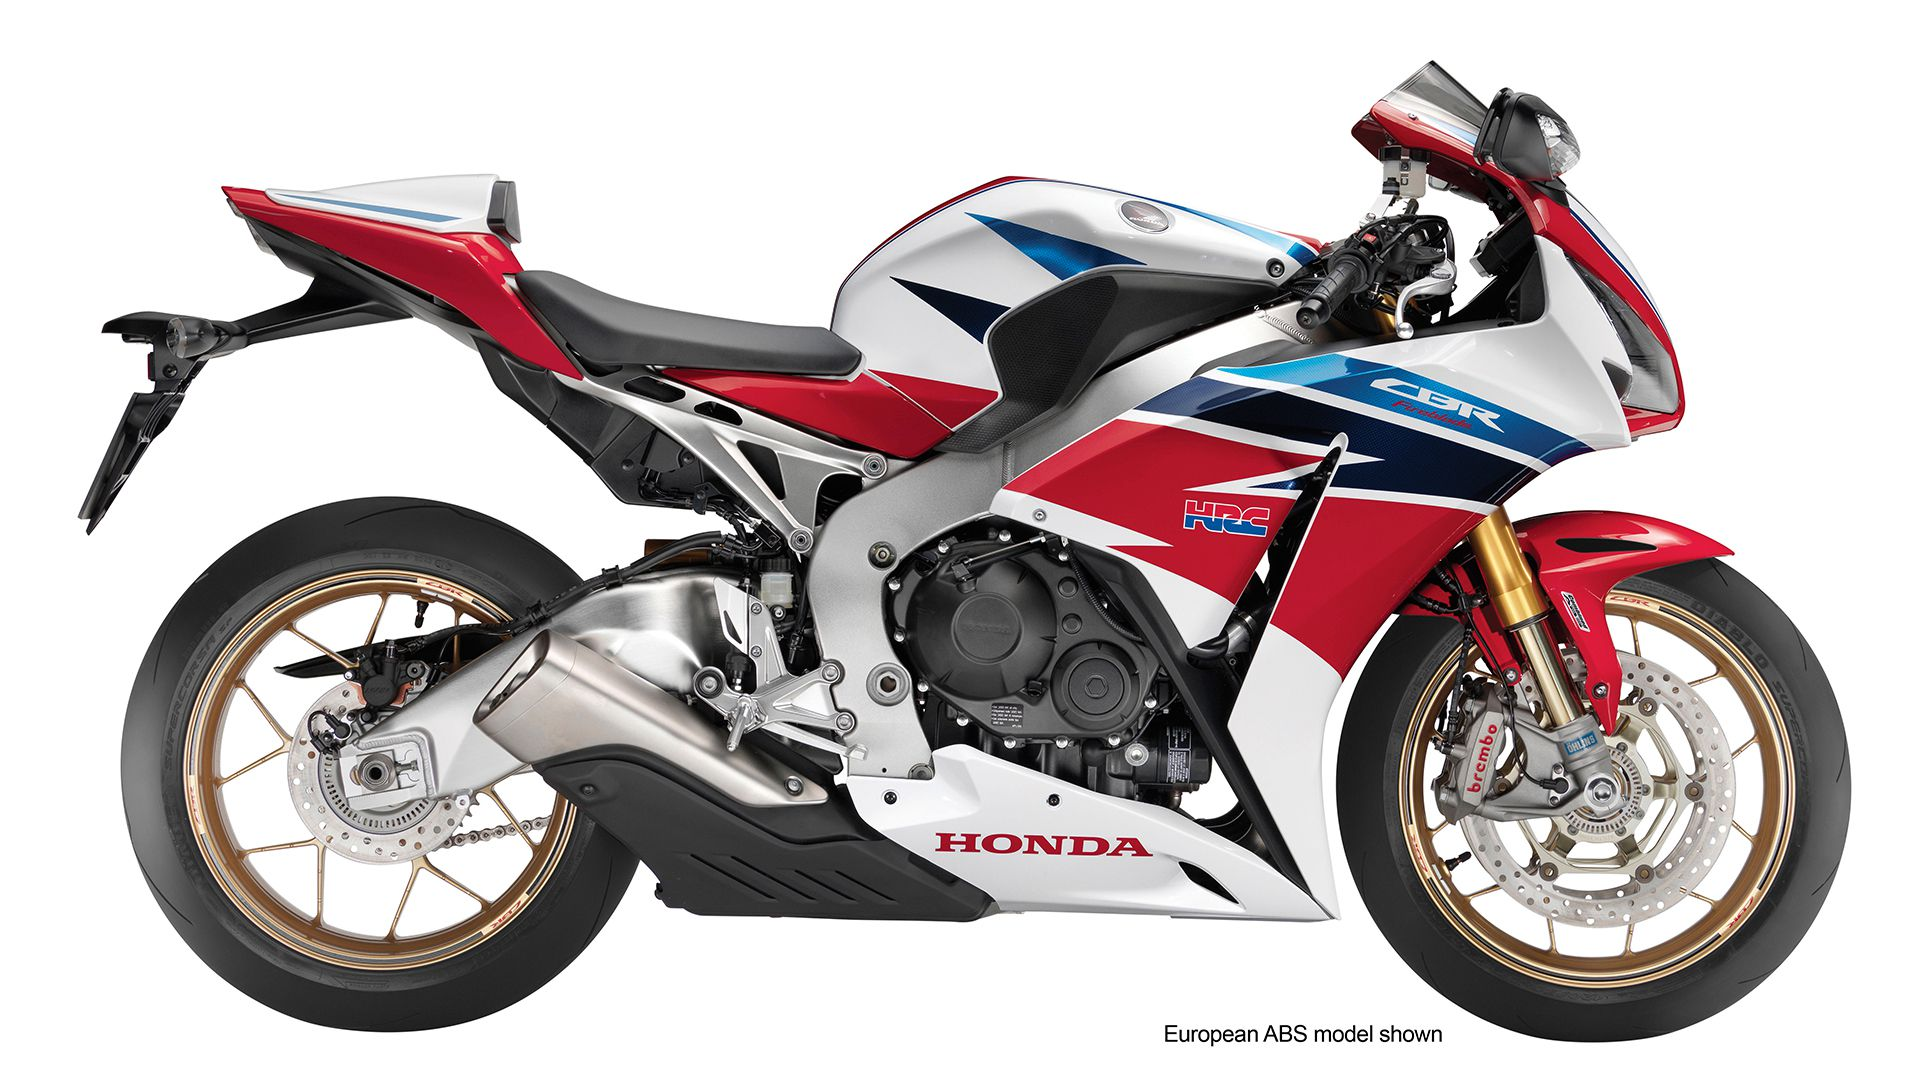 New Honda Models Added For 2014